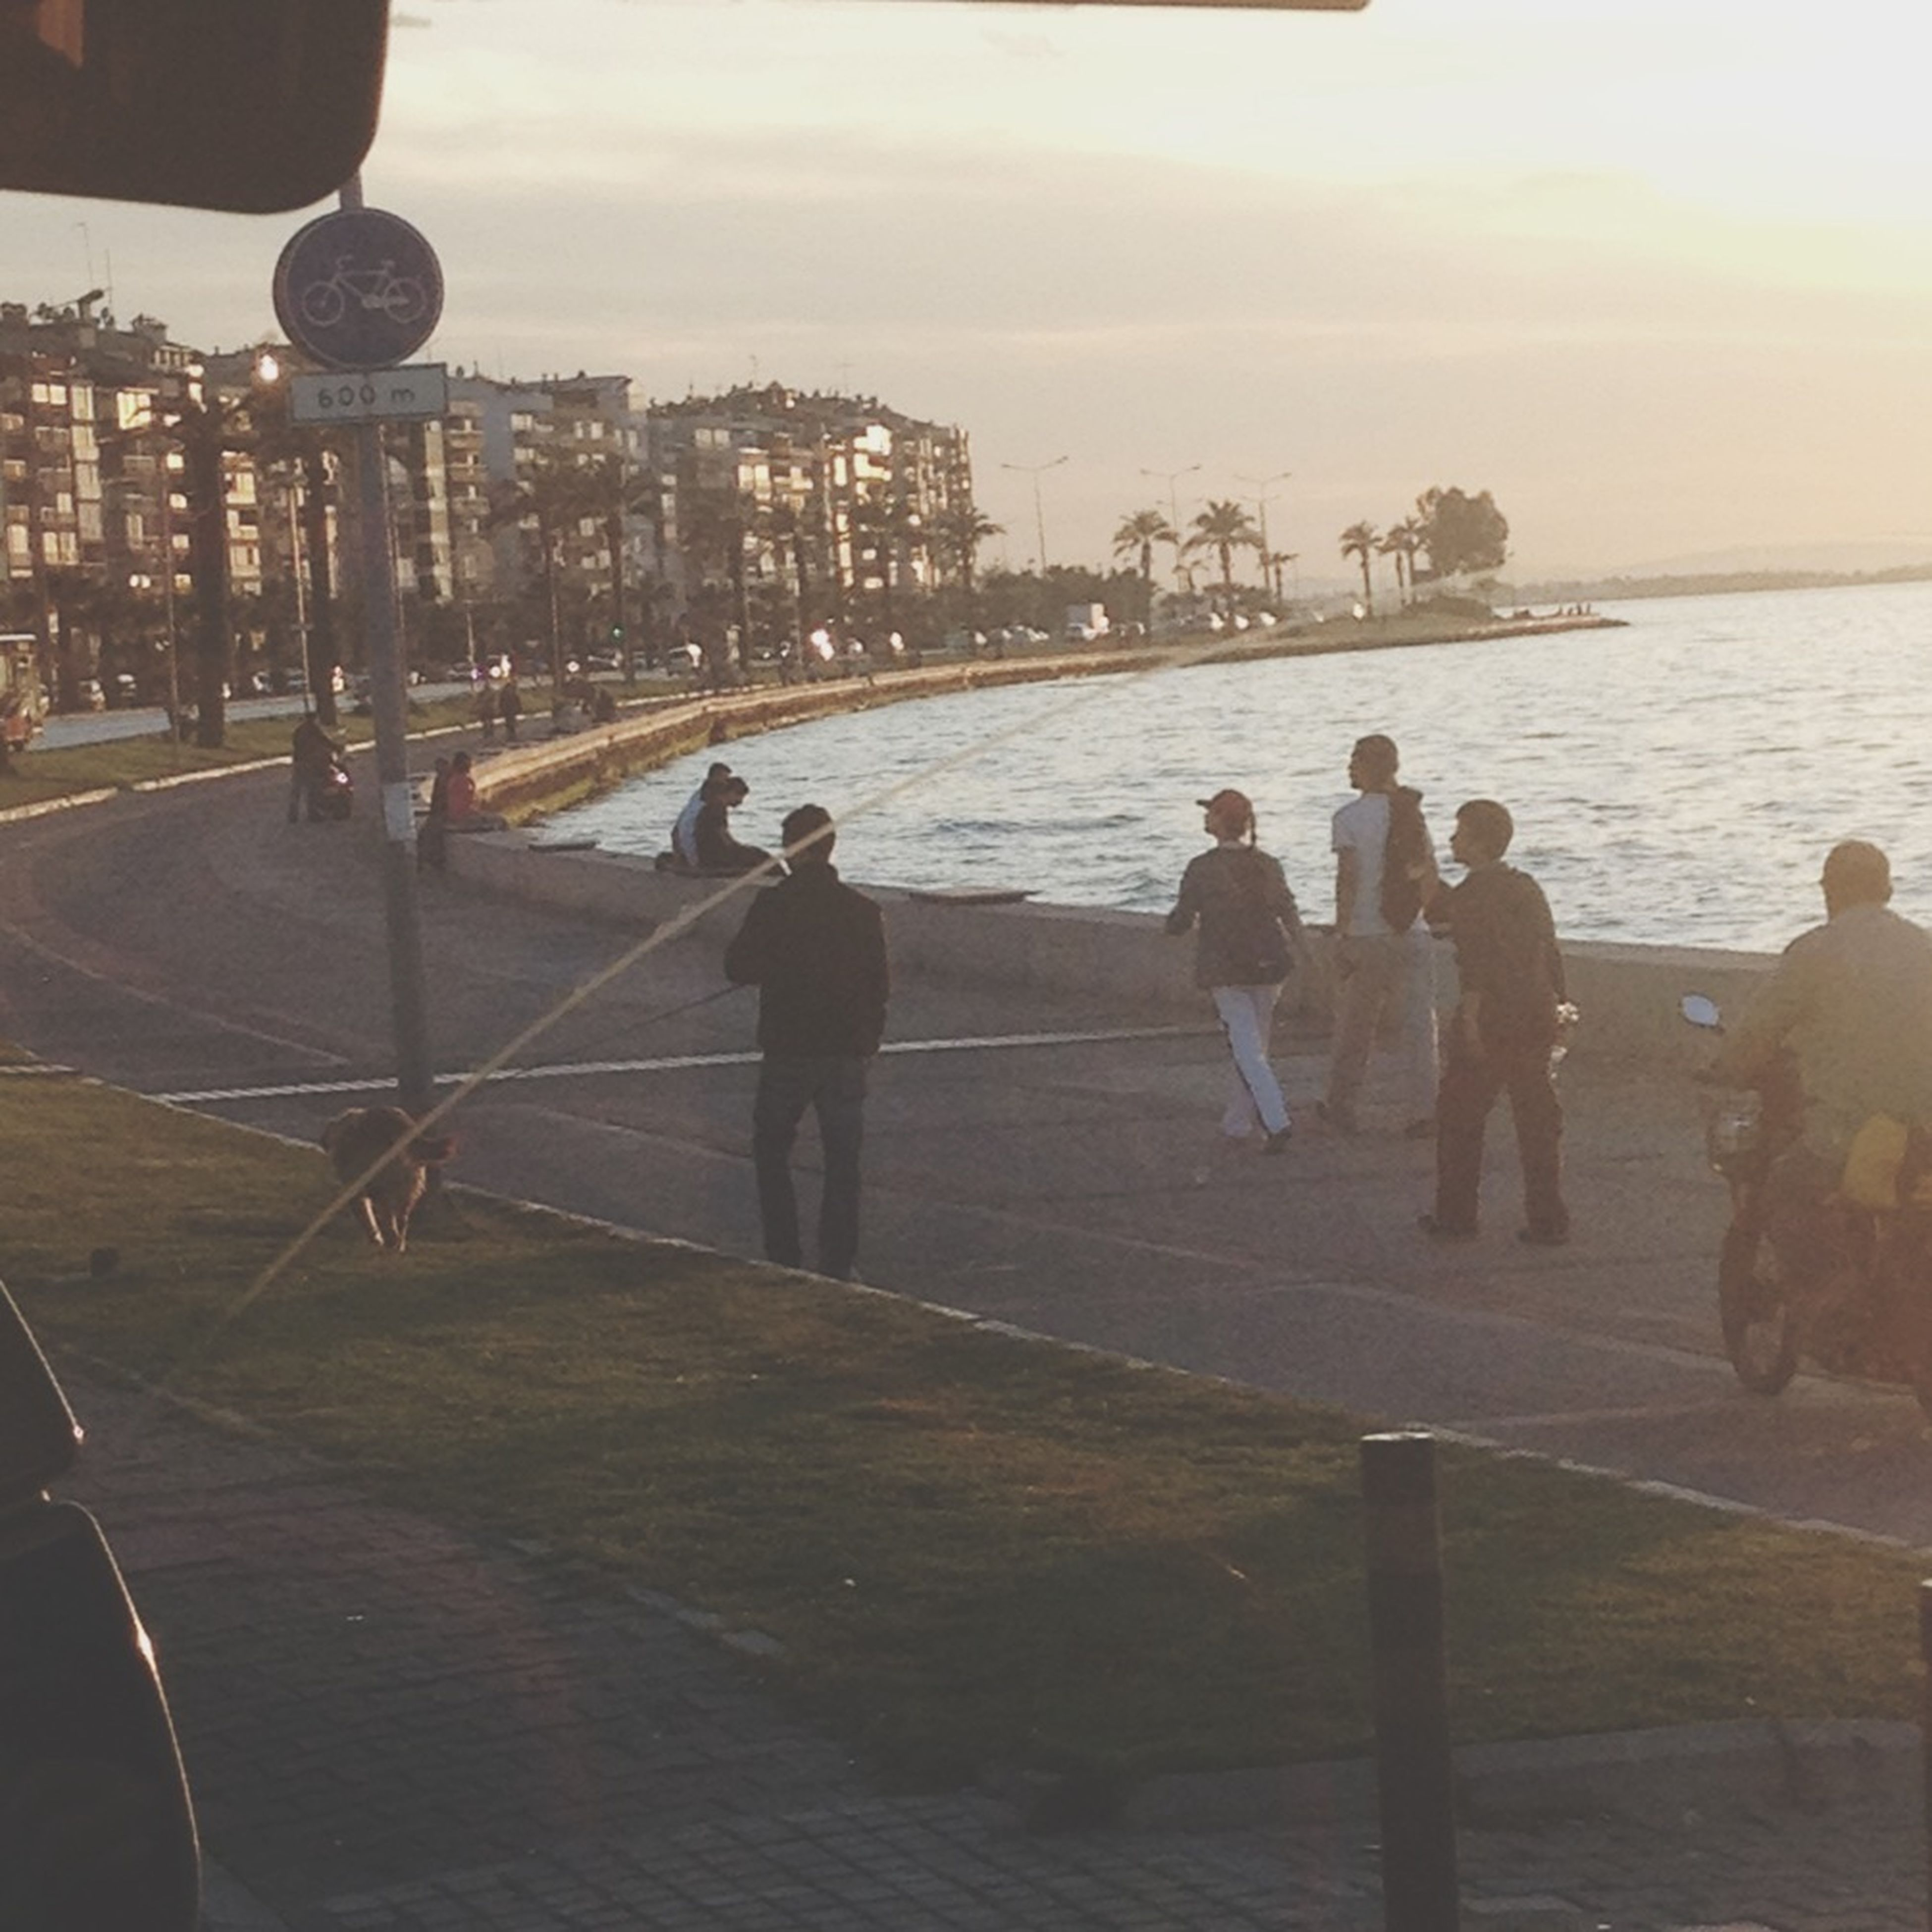 water, lifestyles, sea, men, built structure, architecture, leisure activity, person, building exterior, sky, city, large group of people, railing, walking, standing, city life, rear view, pier, outdoors